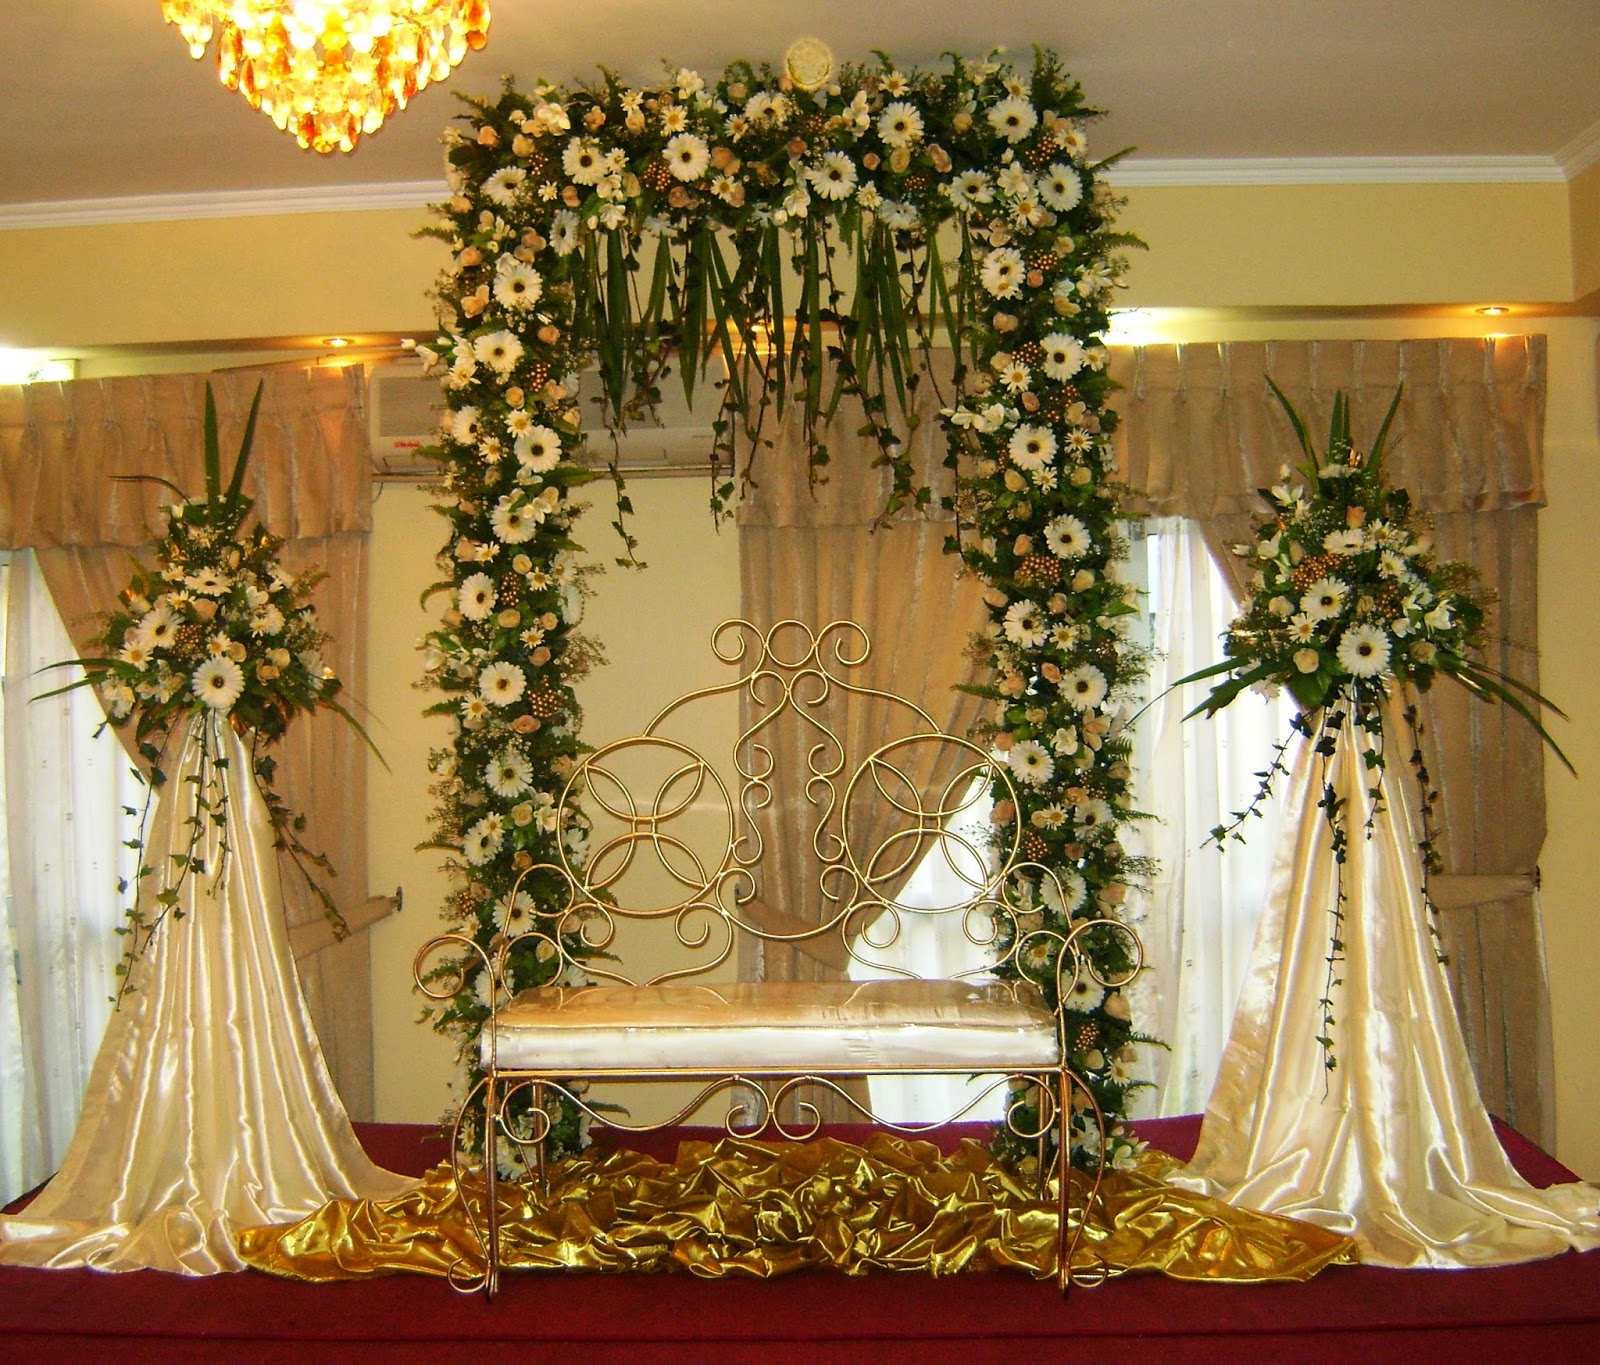 Vismaya wedding settee backs for Floral decorations for home